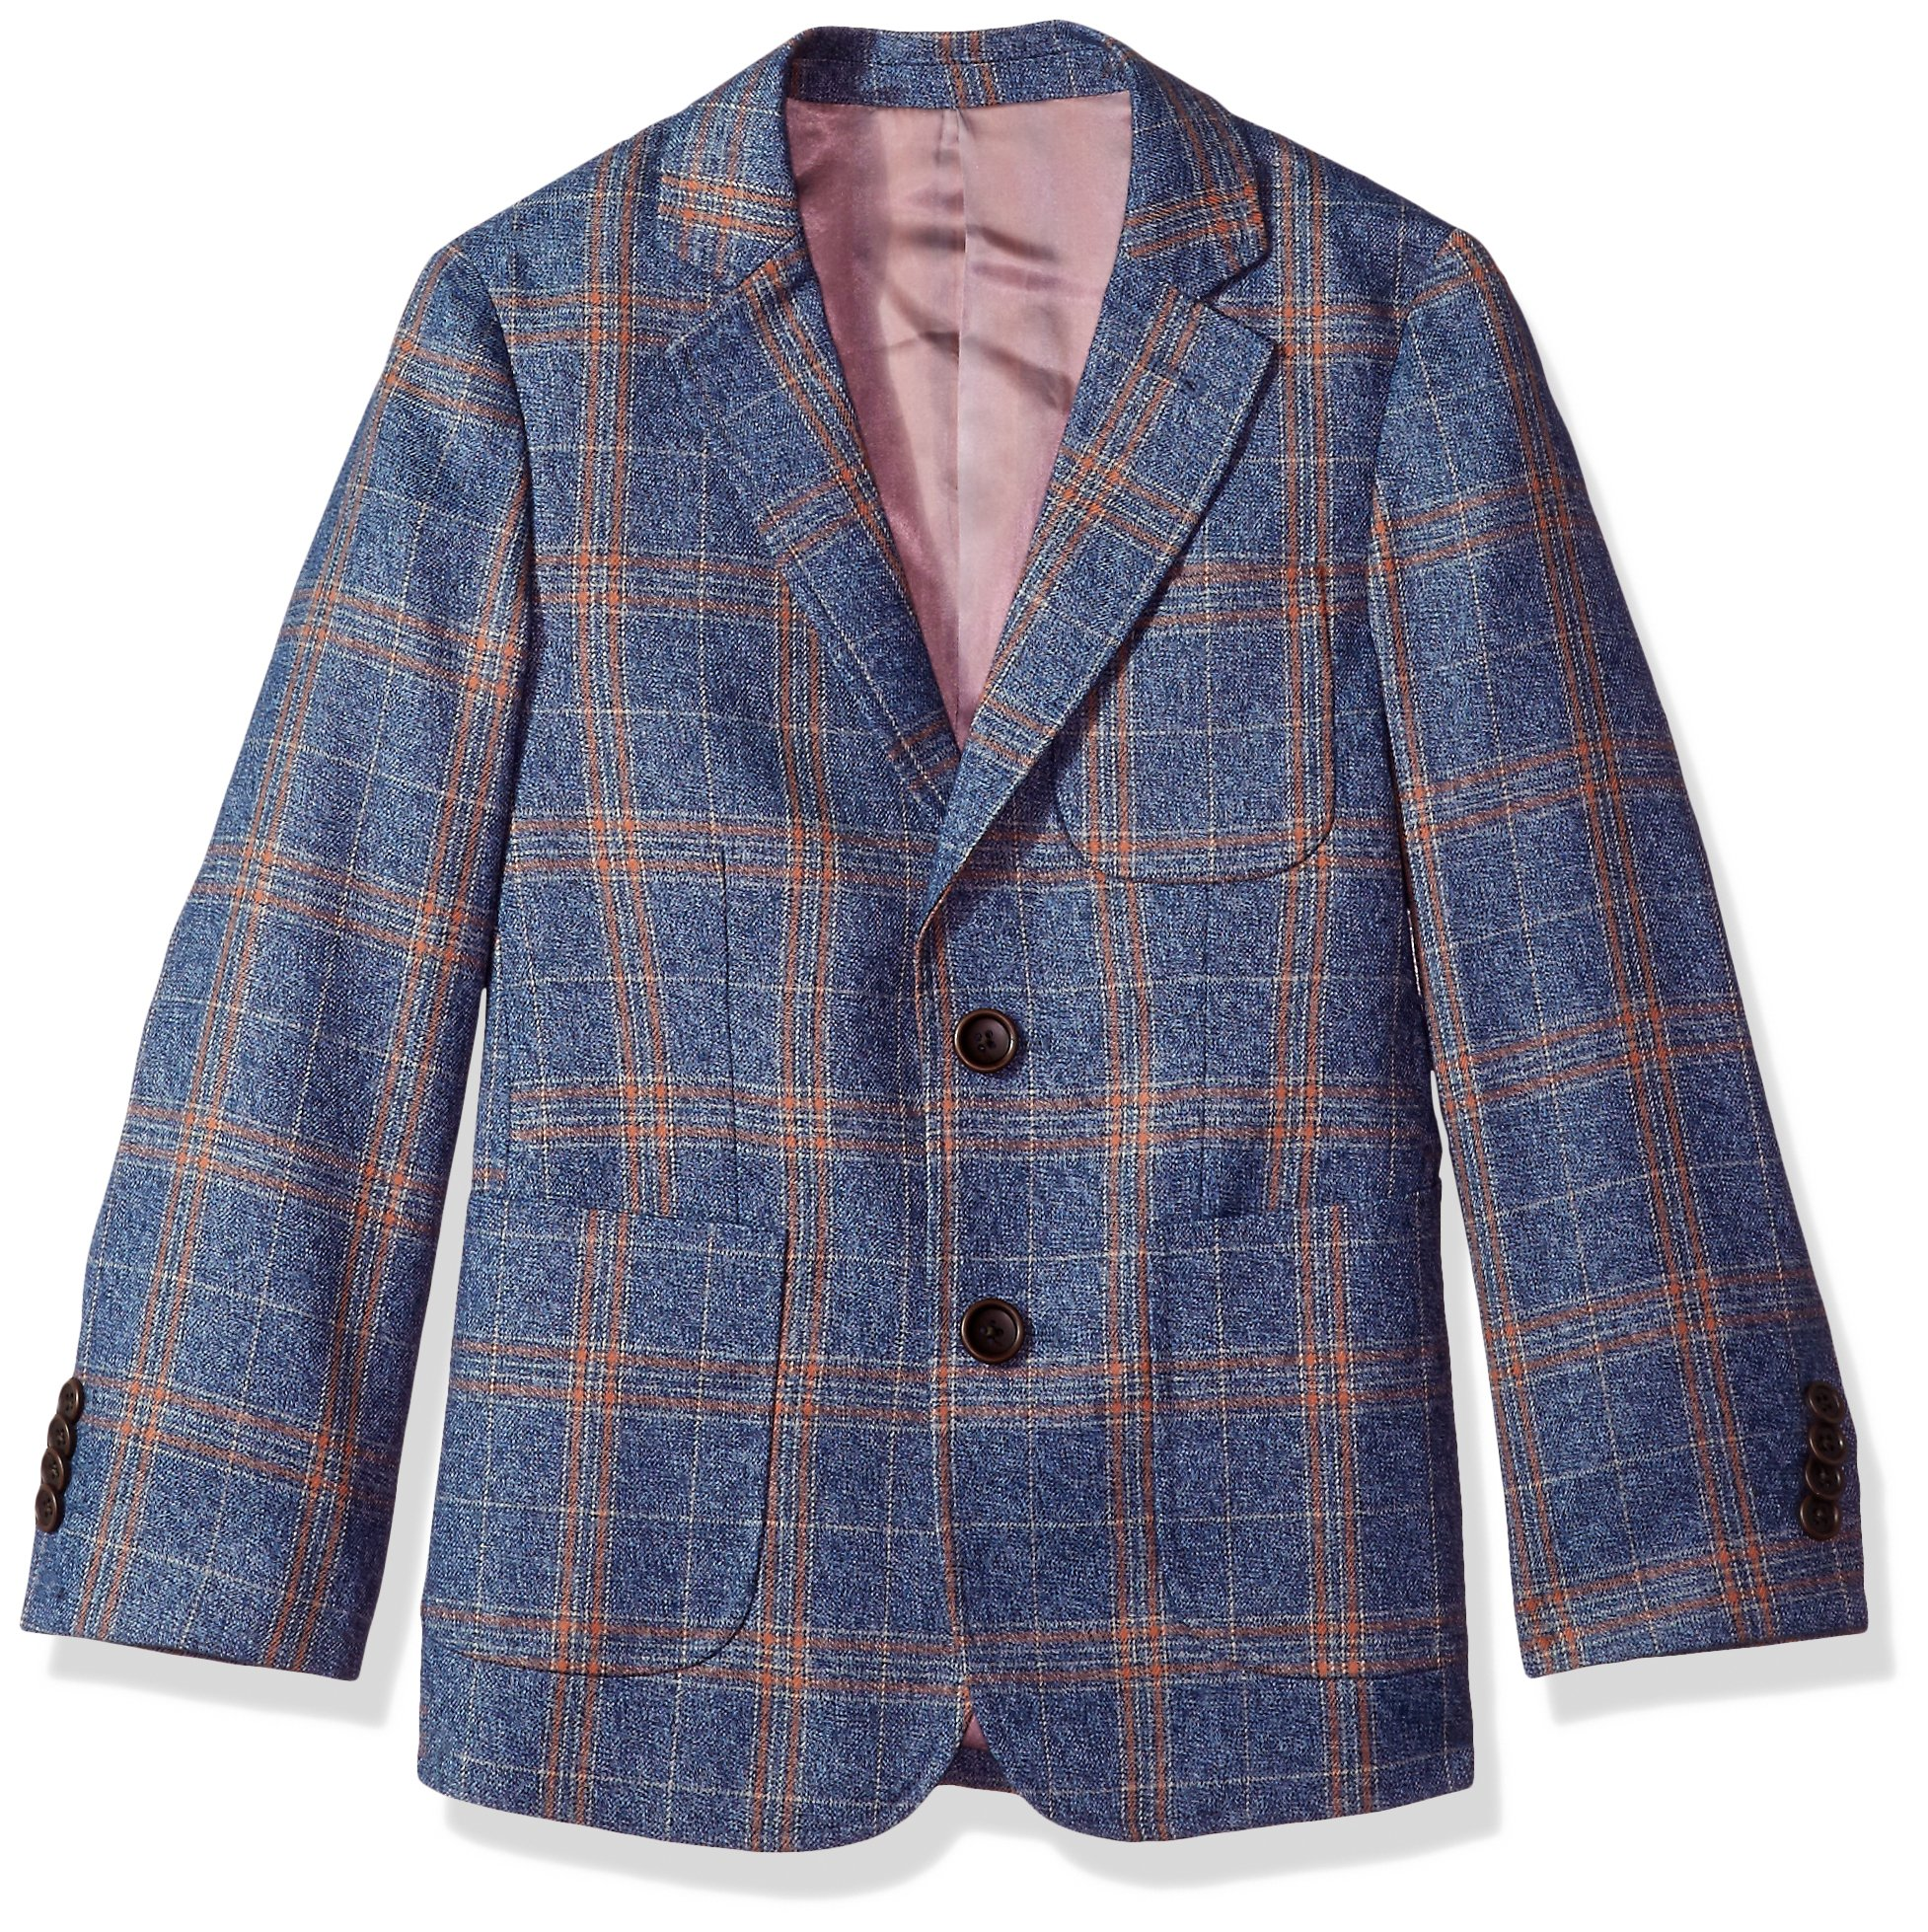 Isaac Mizrahi Toddler Boys' Large Contrast Plaid Blazer, Blue, 2 by Isaac Mizrahi